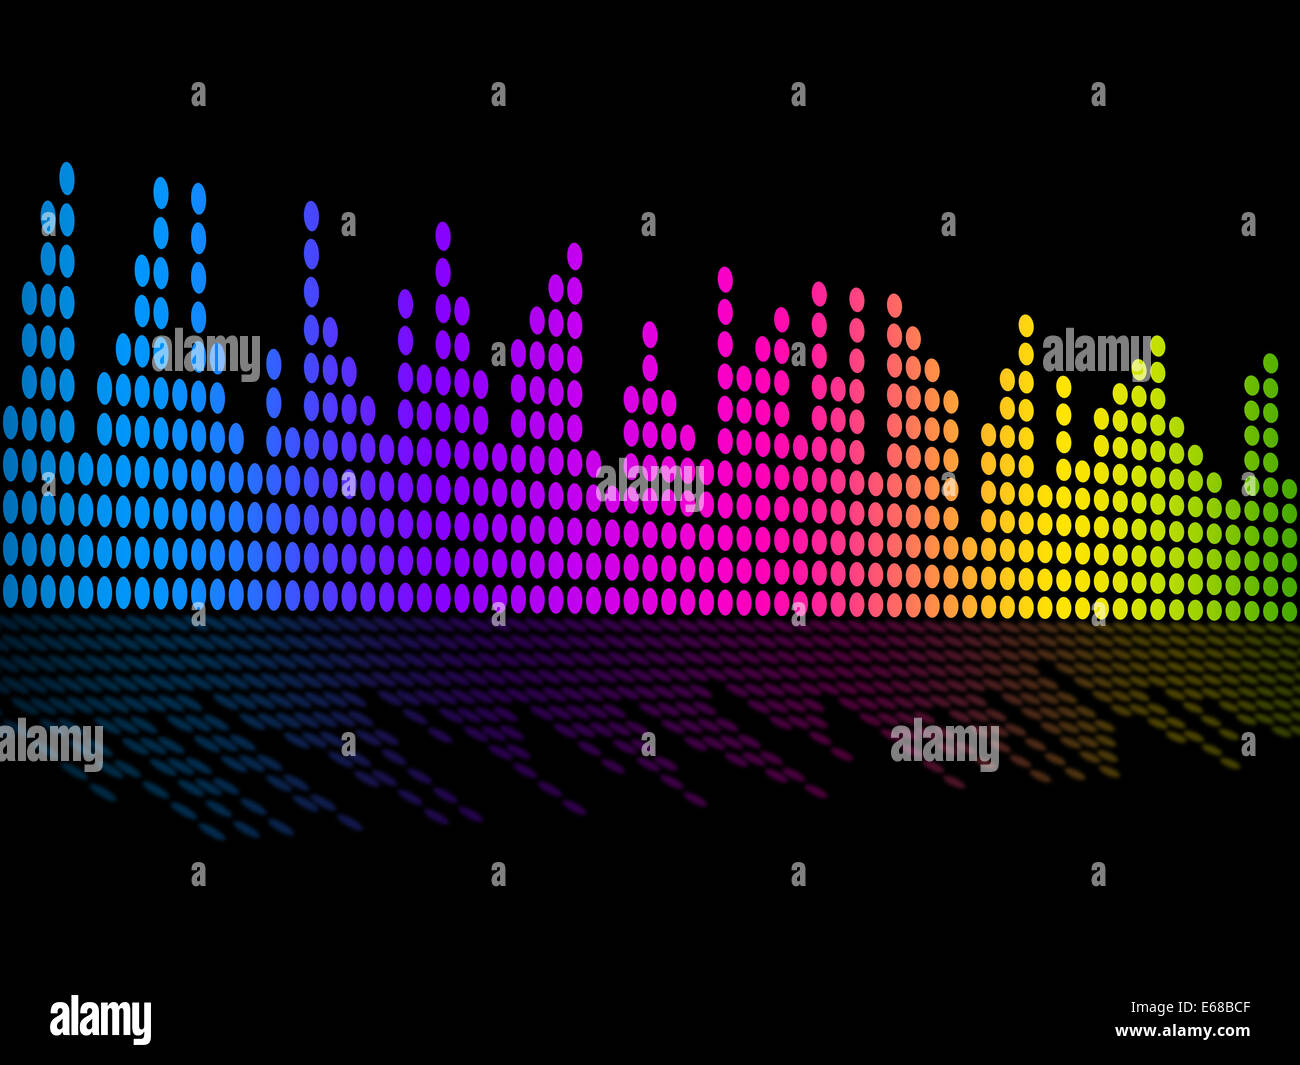 digital-music-beats-background-showing-music-soundtrack-or-sound-pulse-E68BCF.jpg